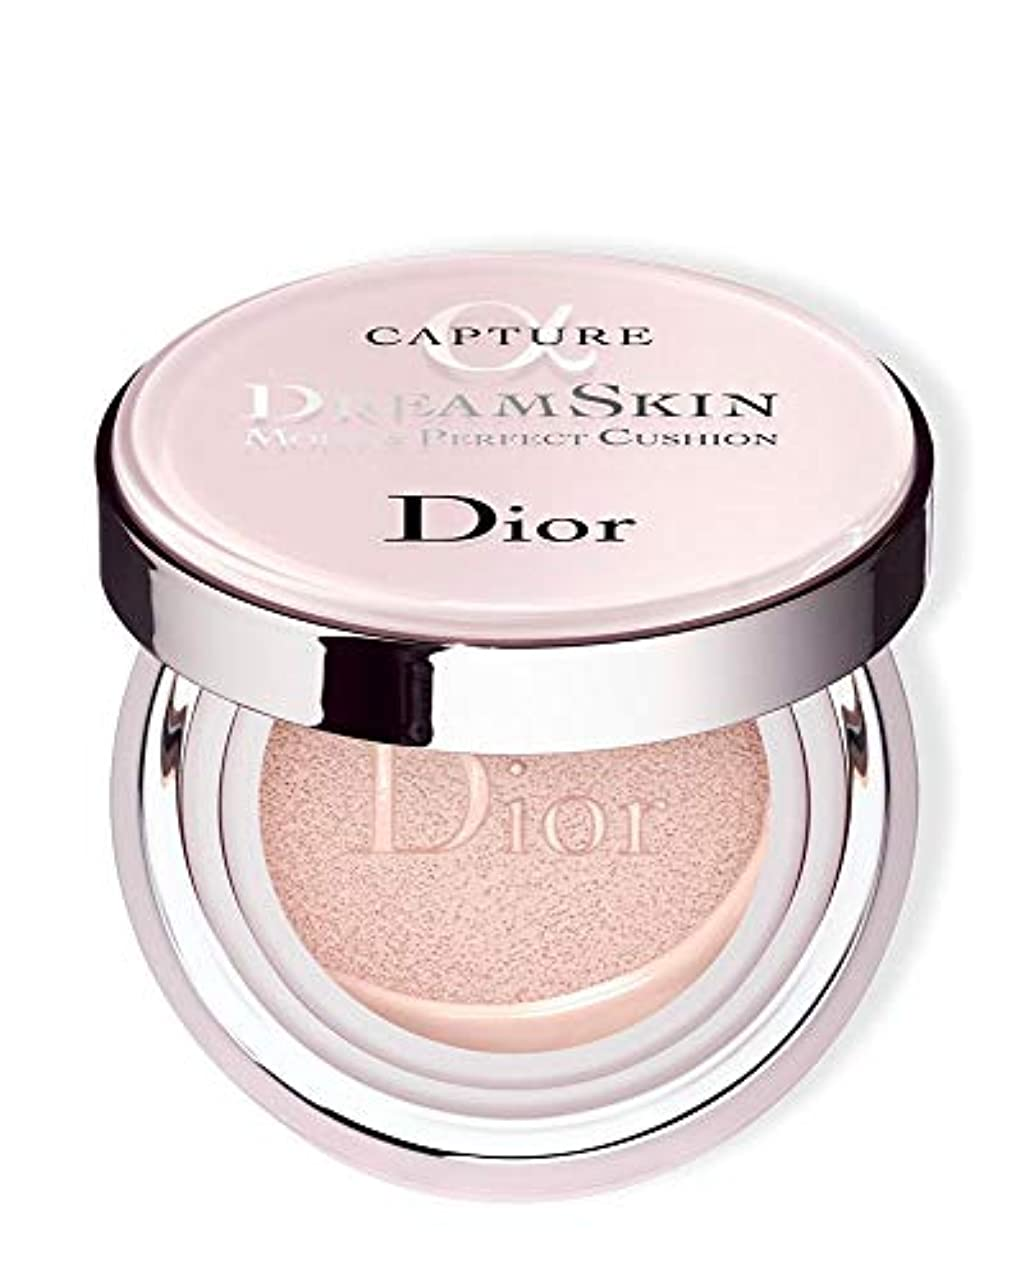 チェス倒産放つクリスチャンディオール Capture Dreamskin Moist & Perfect Cushion SPF 50 With Extra Refill - # 000 2x15g/0.5oz並行輸入品